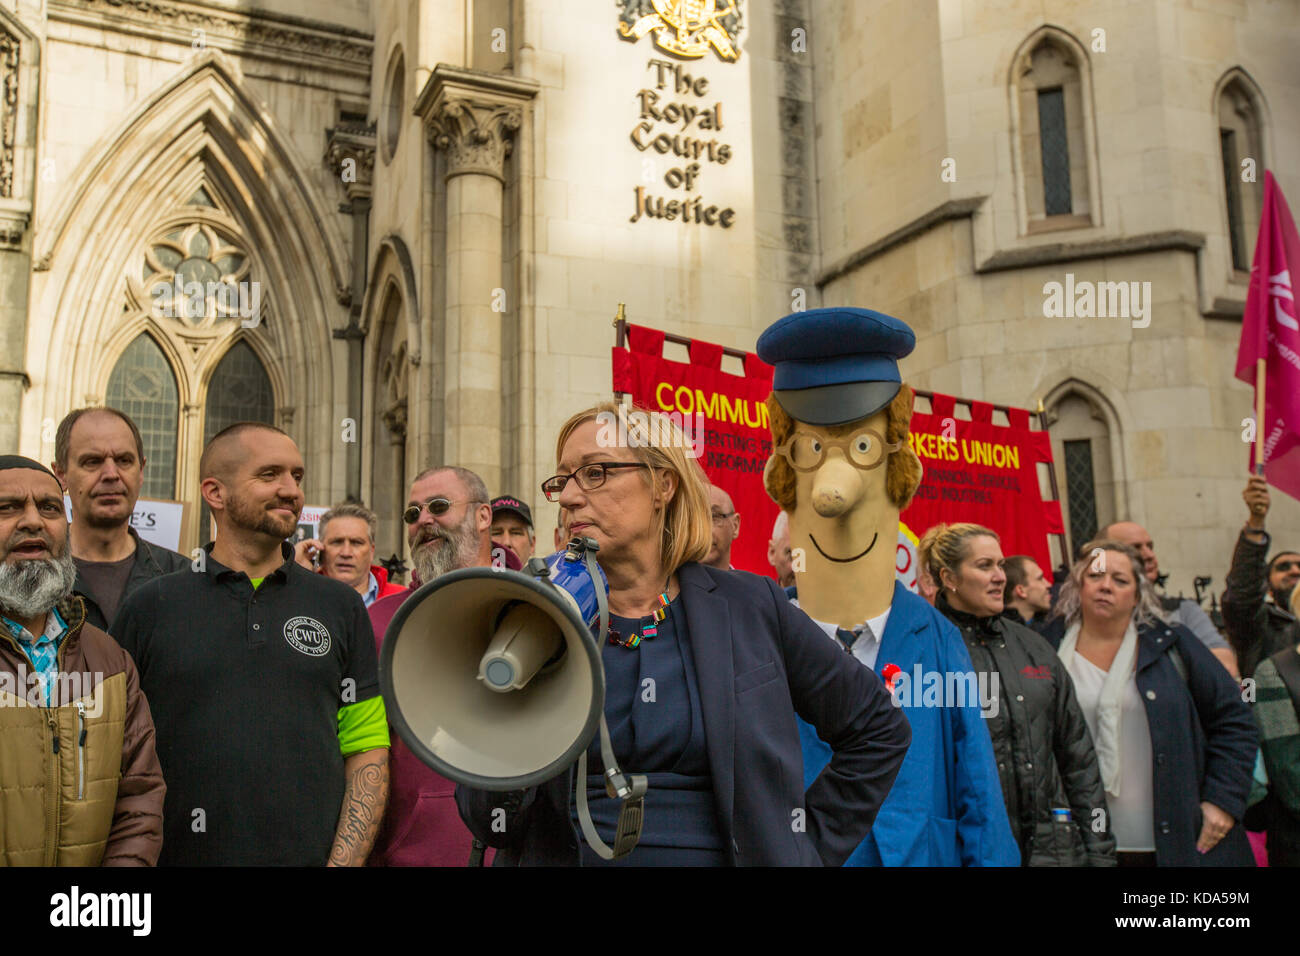 London, UK. 12 October 2017. Gill Furniss, Labour MP, addresses members of the Communications Workers Union protesting - Stock Image